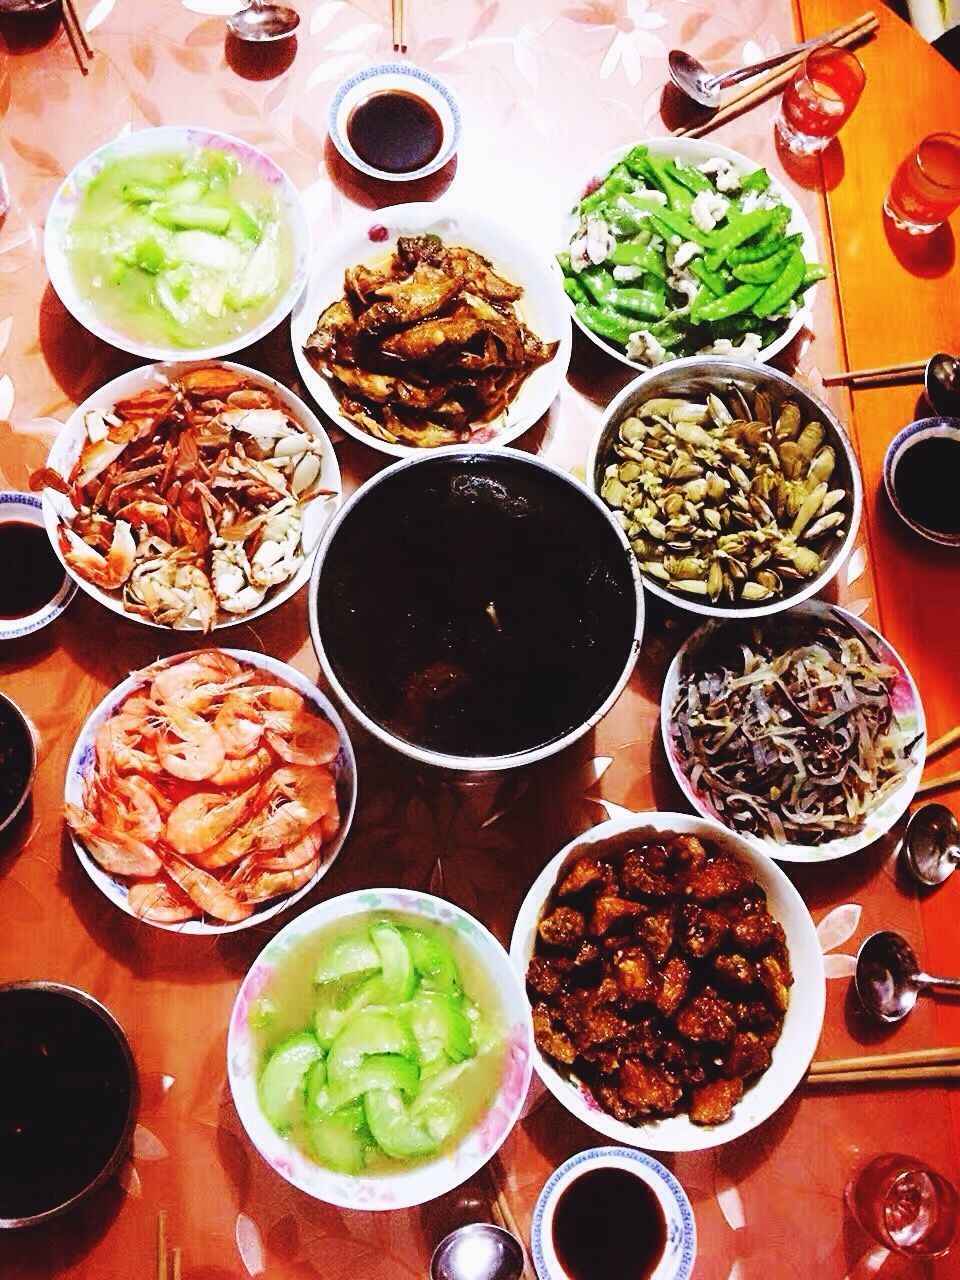 ready-to-eat, food, food and drink, variation, bowl, serving size, table, meat, vegetable, high angle view, indoors, freshness, choice, healthy eating, plate, meal, indulgence, no people, chopsticks, close-up, day